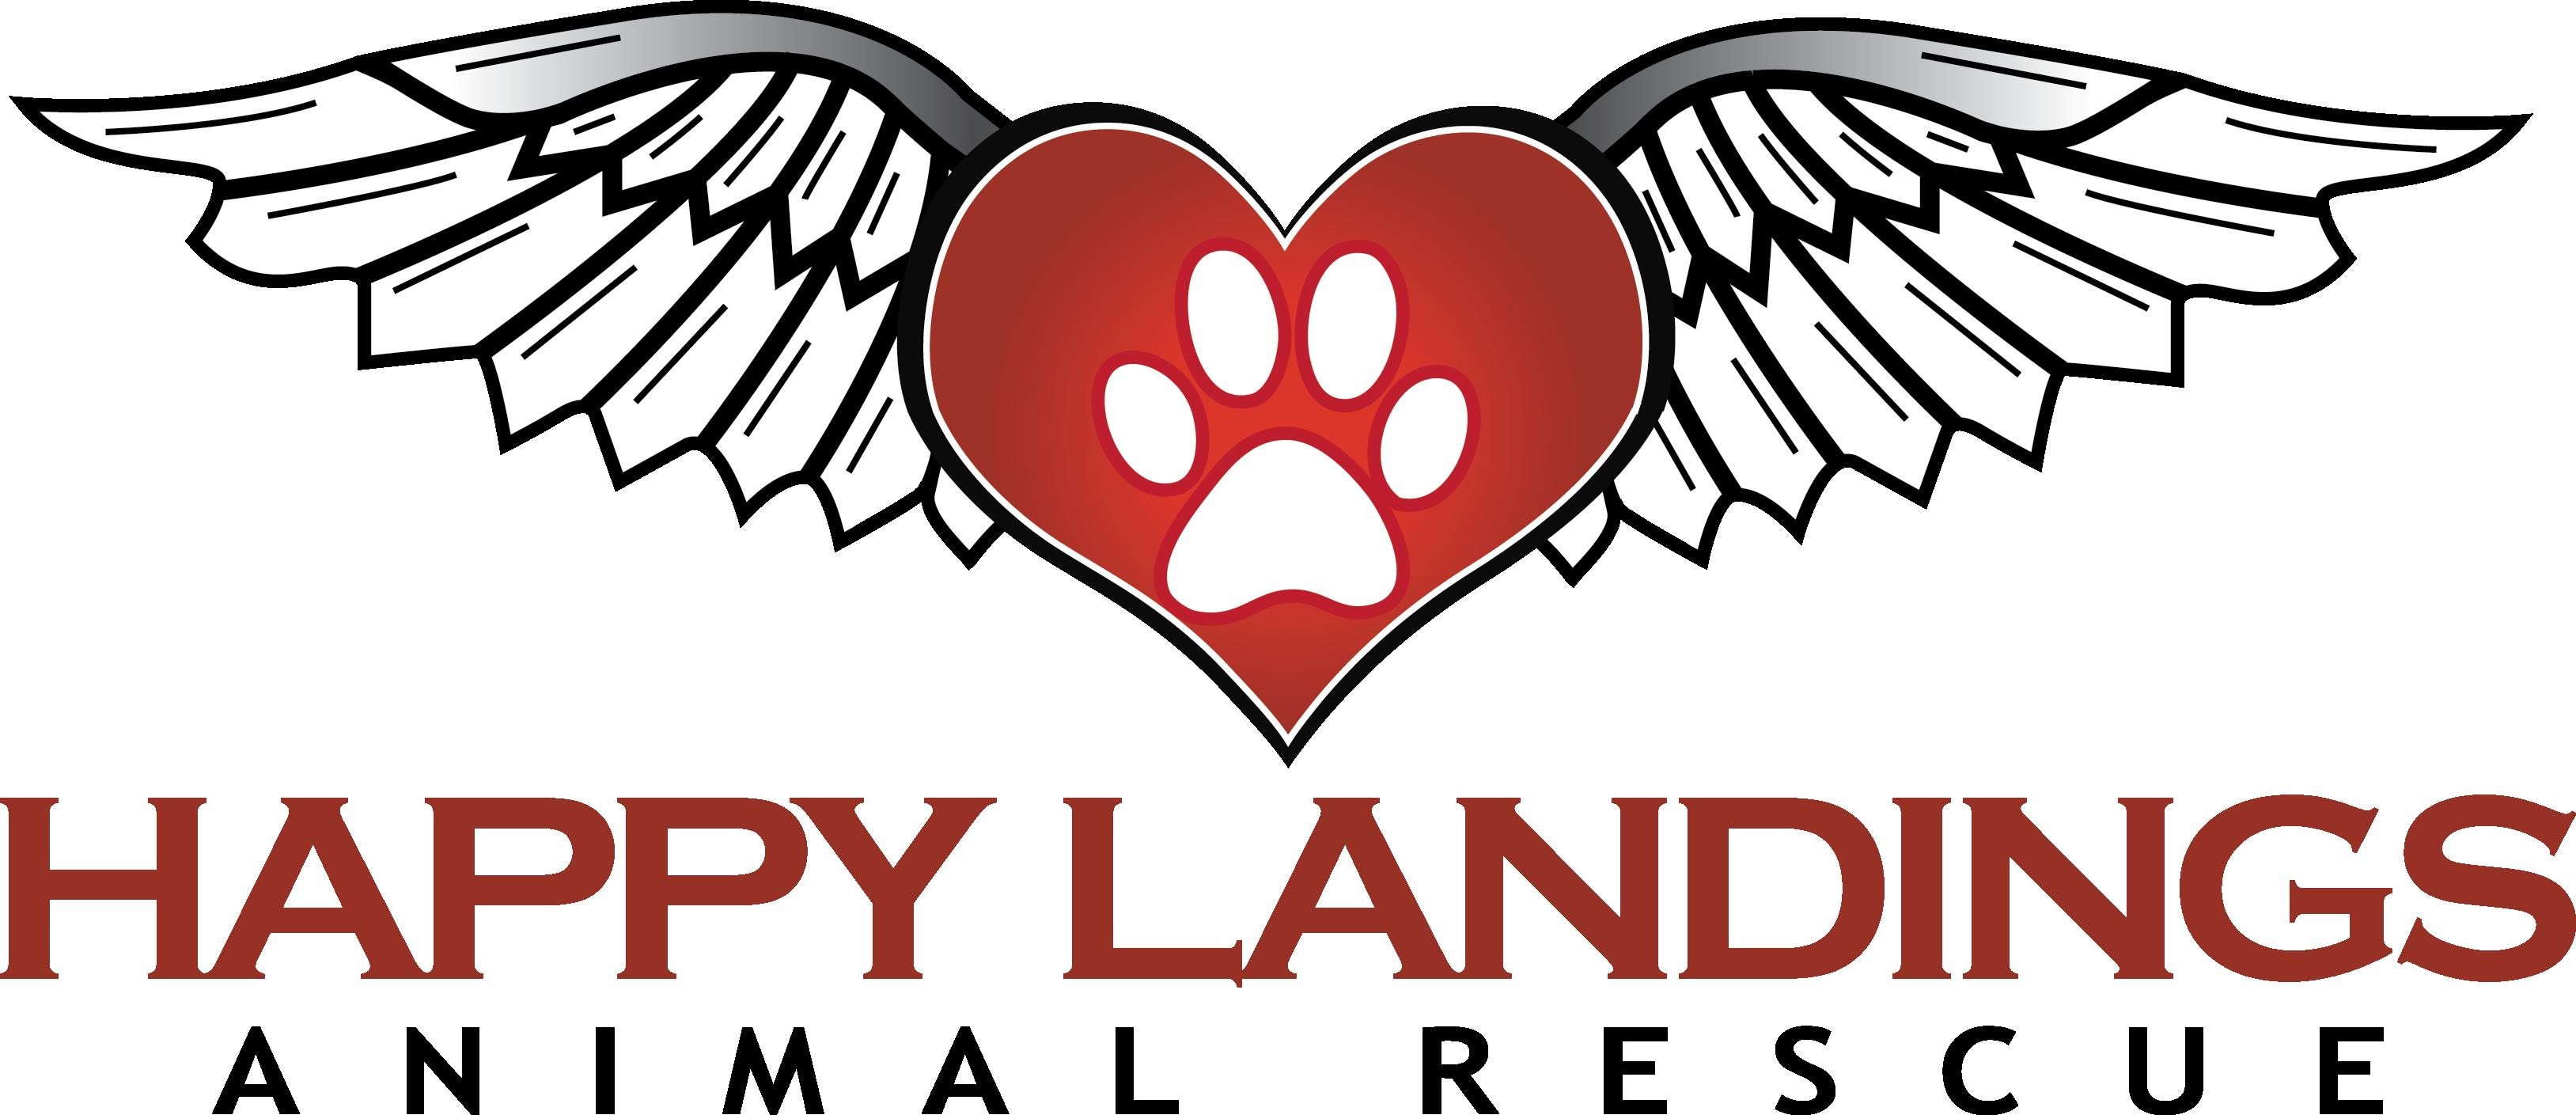 Happy Landings Animal Rescue